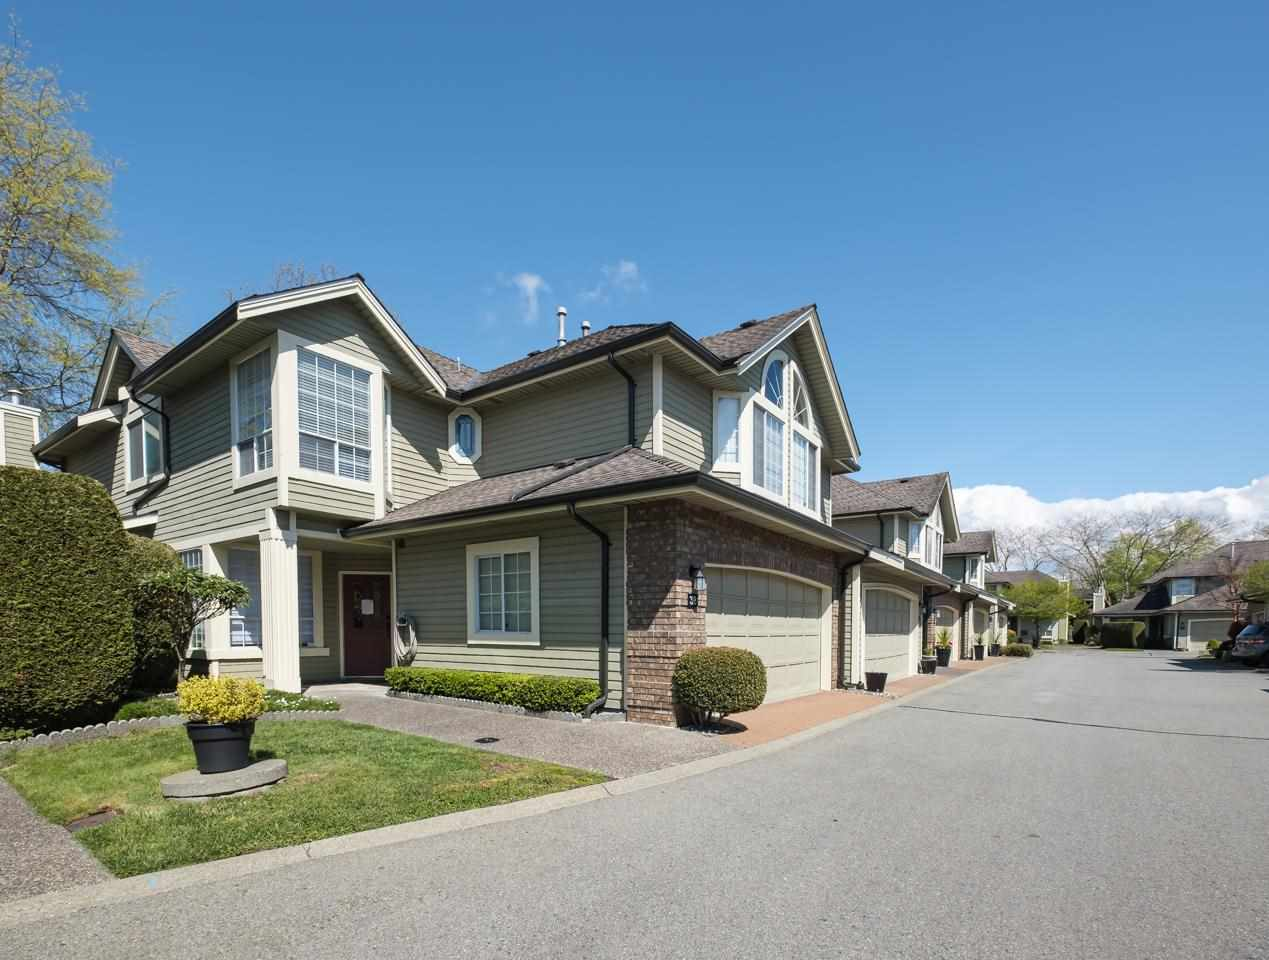 38 11100 RAILWAY AVENUE - Westwind Townhouse for sale, 2 Bedrooms (R2572042)